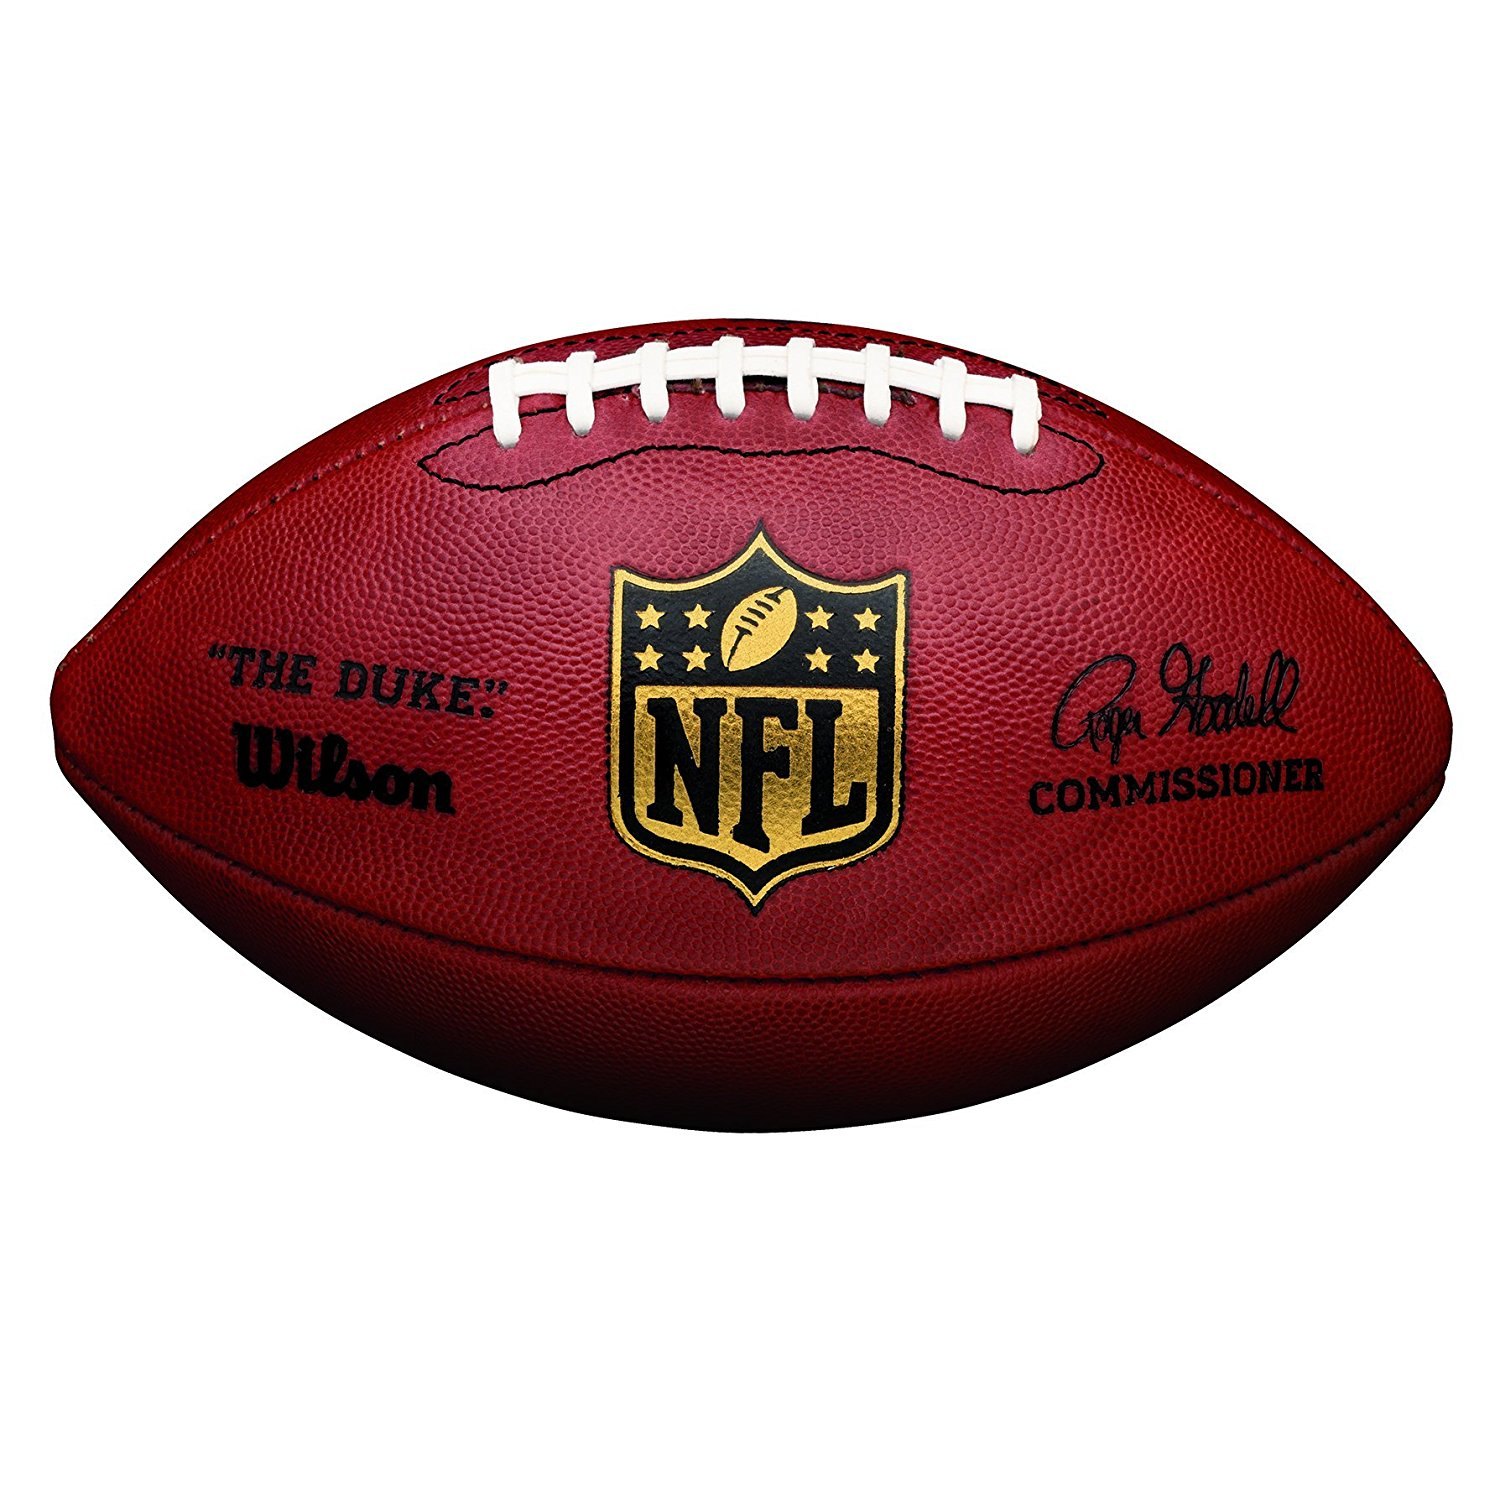 Amazon.com : Wilson The Duke Official NFL Game Football : Sports ...